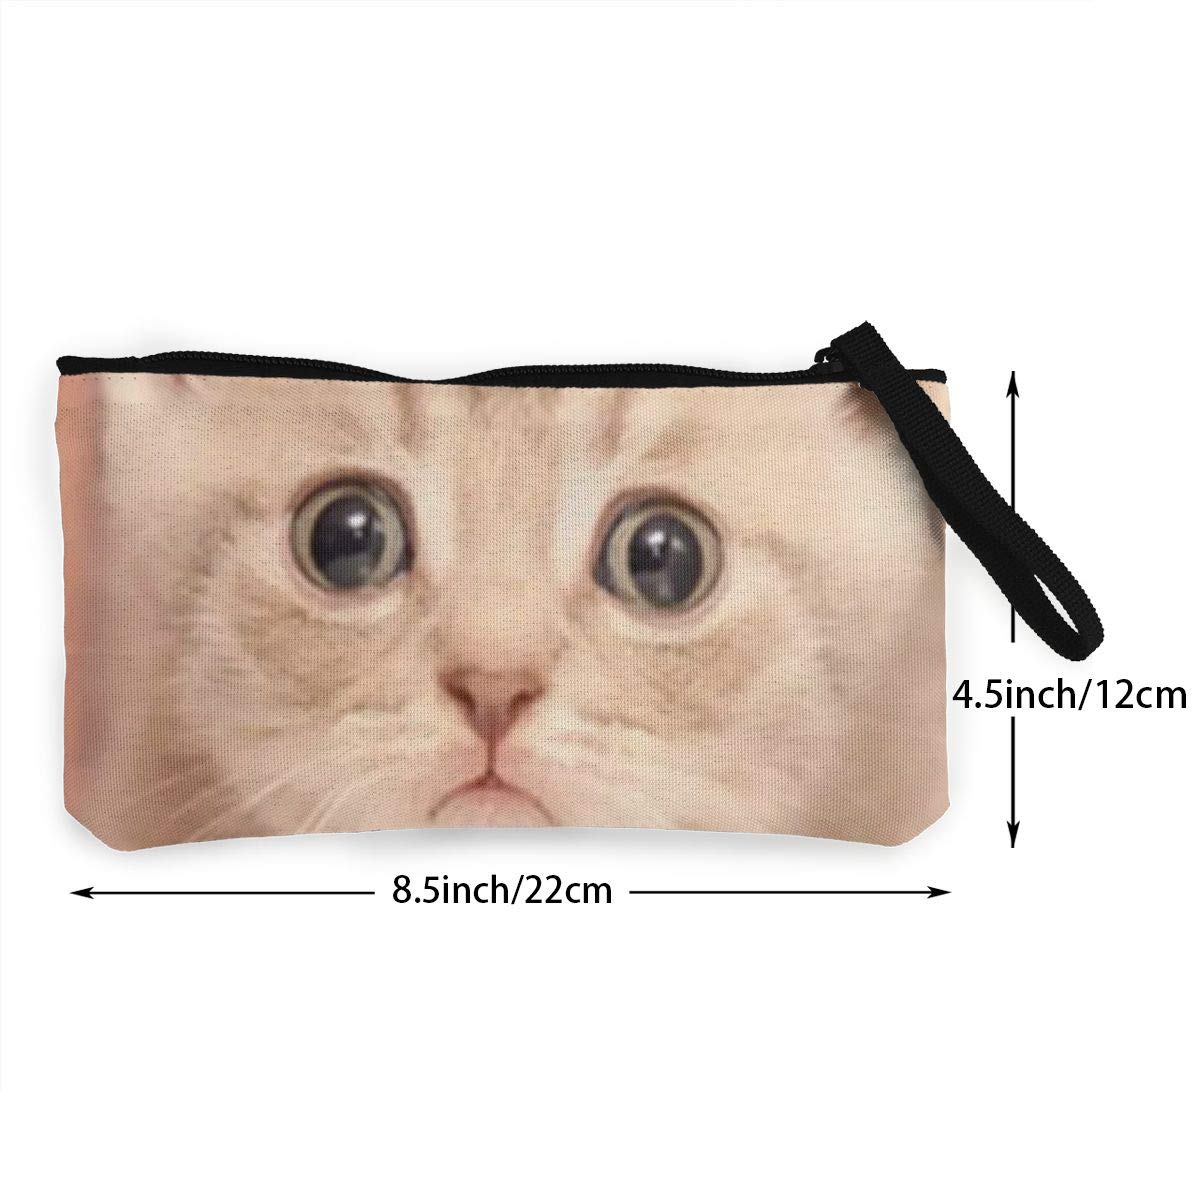 YUANSHAN Lovely Cat Unisex Canvas Coin Purse Change Cash Bag Zipper Small Purse Wallets with Handle